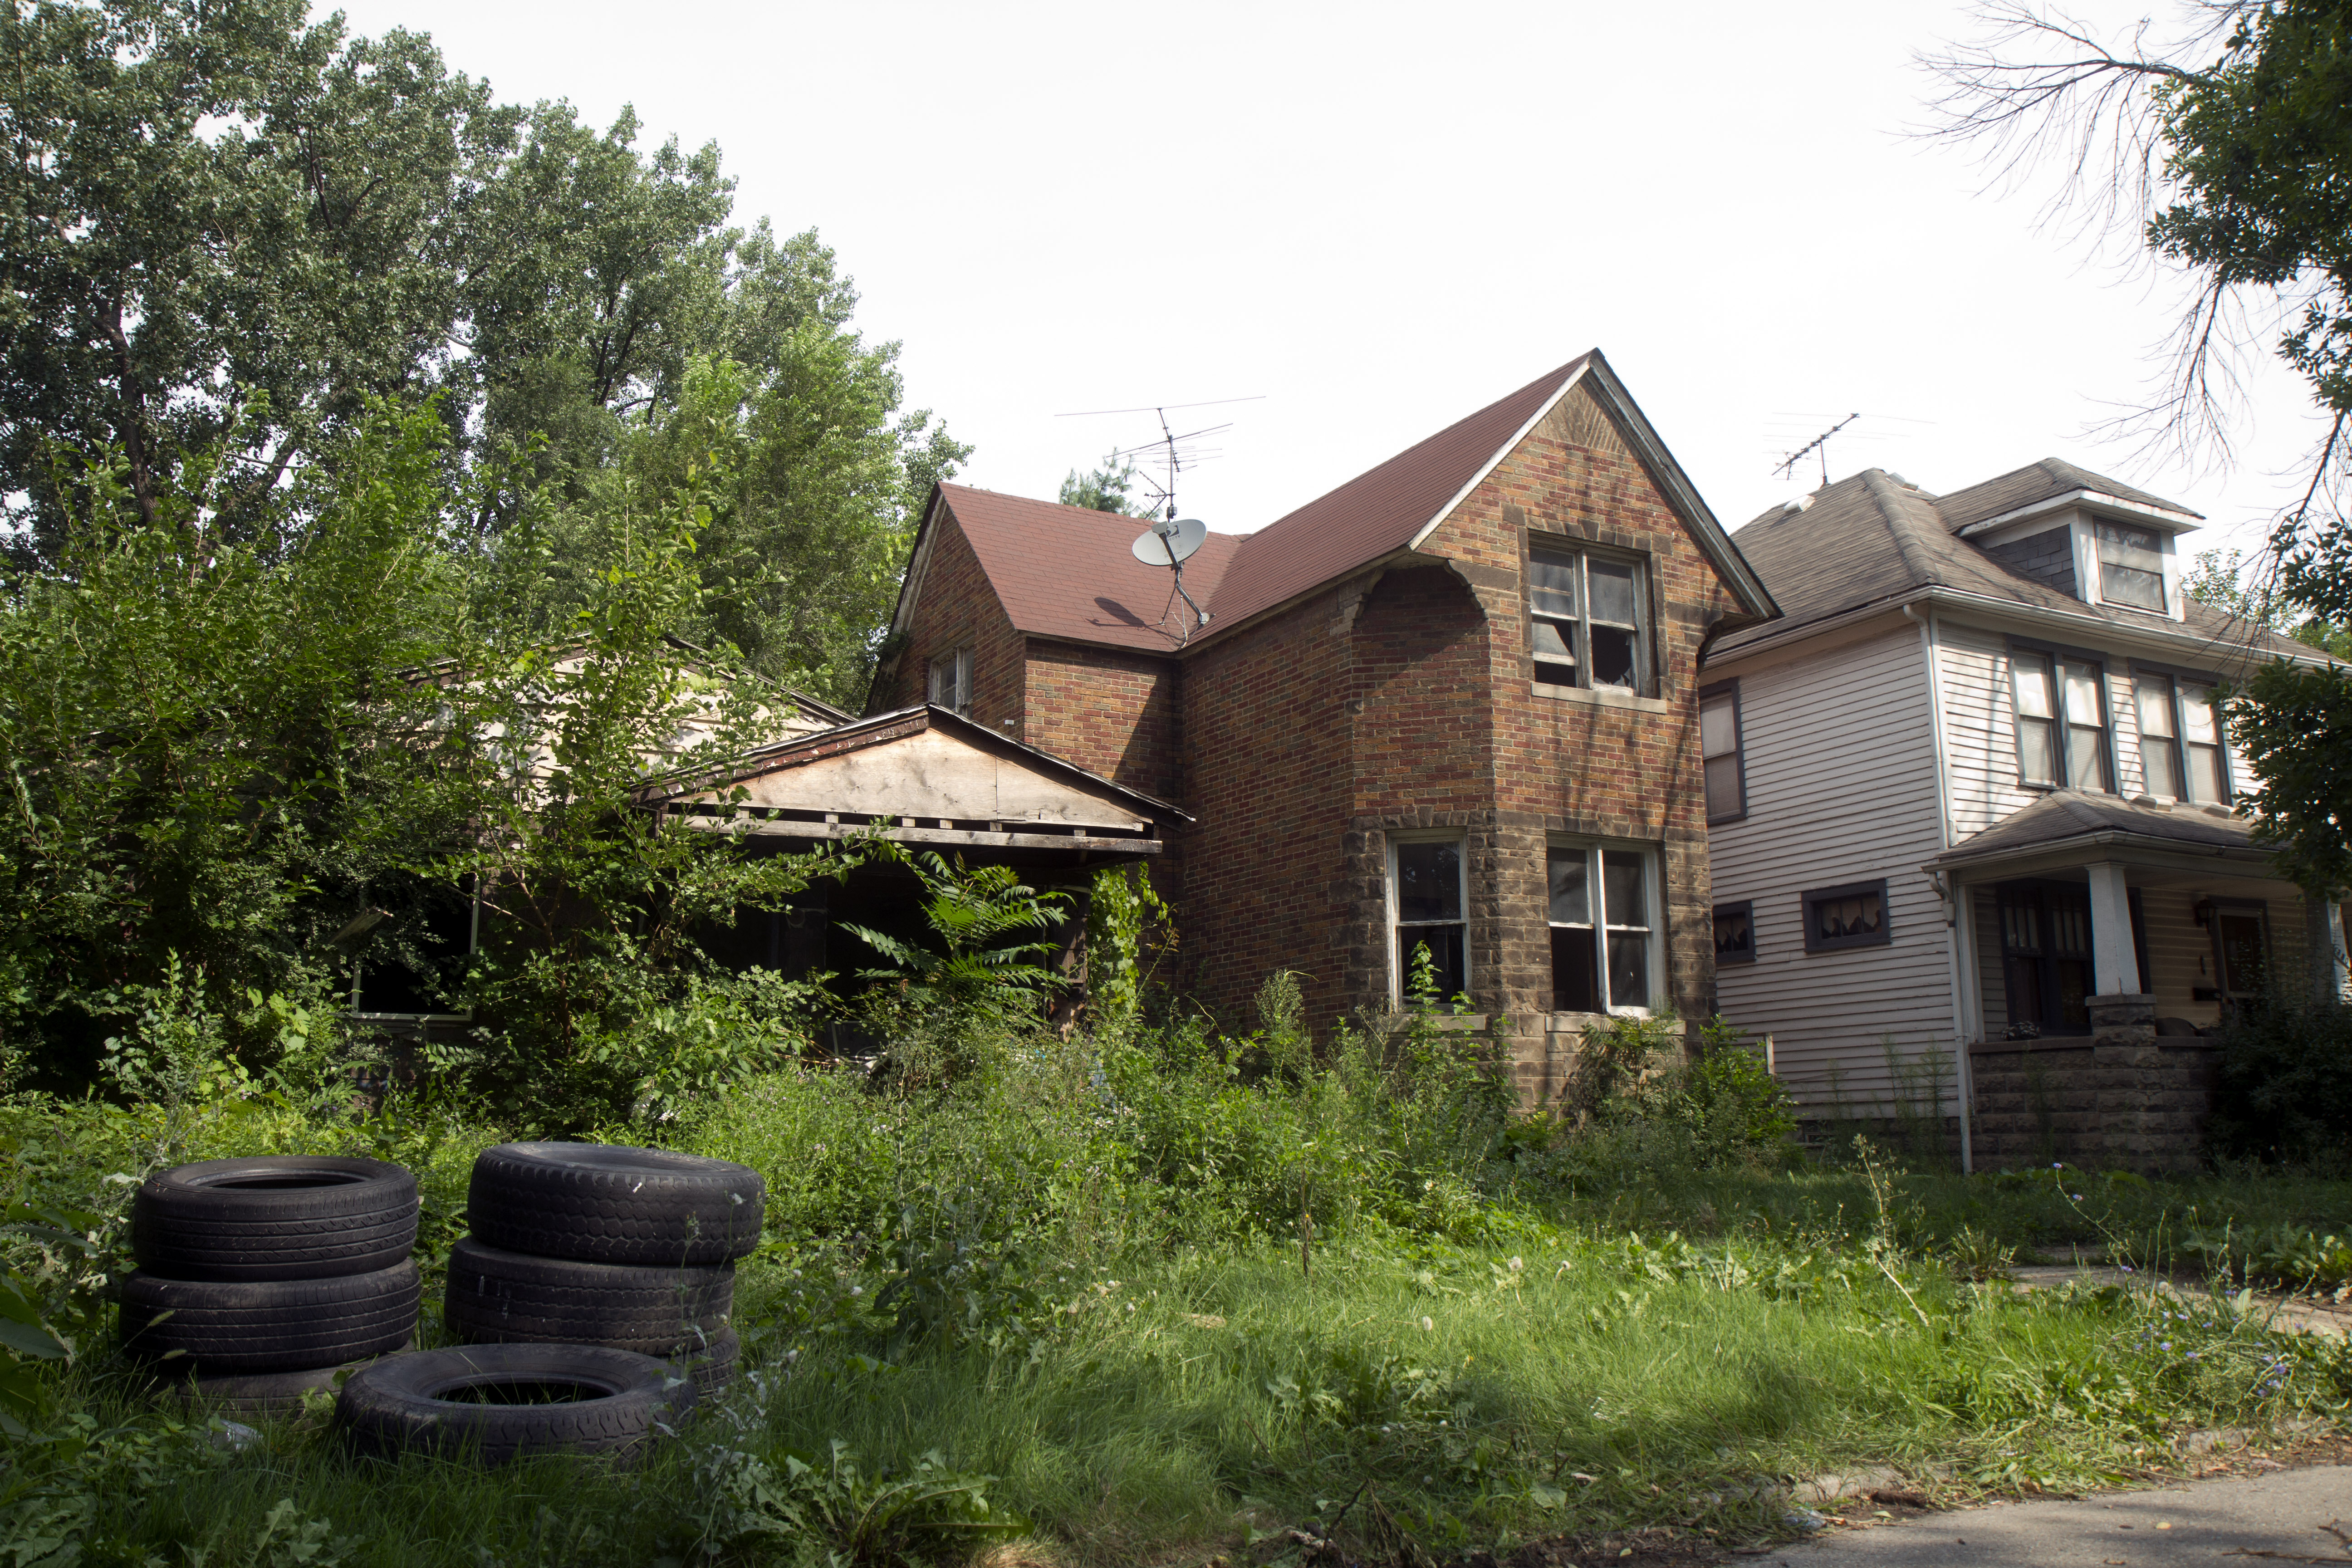 Detroiters refuse to relocate for oil giant